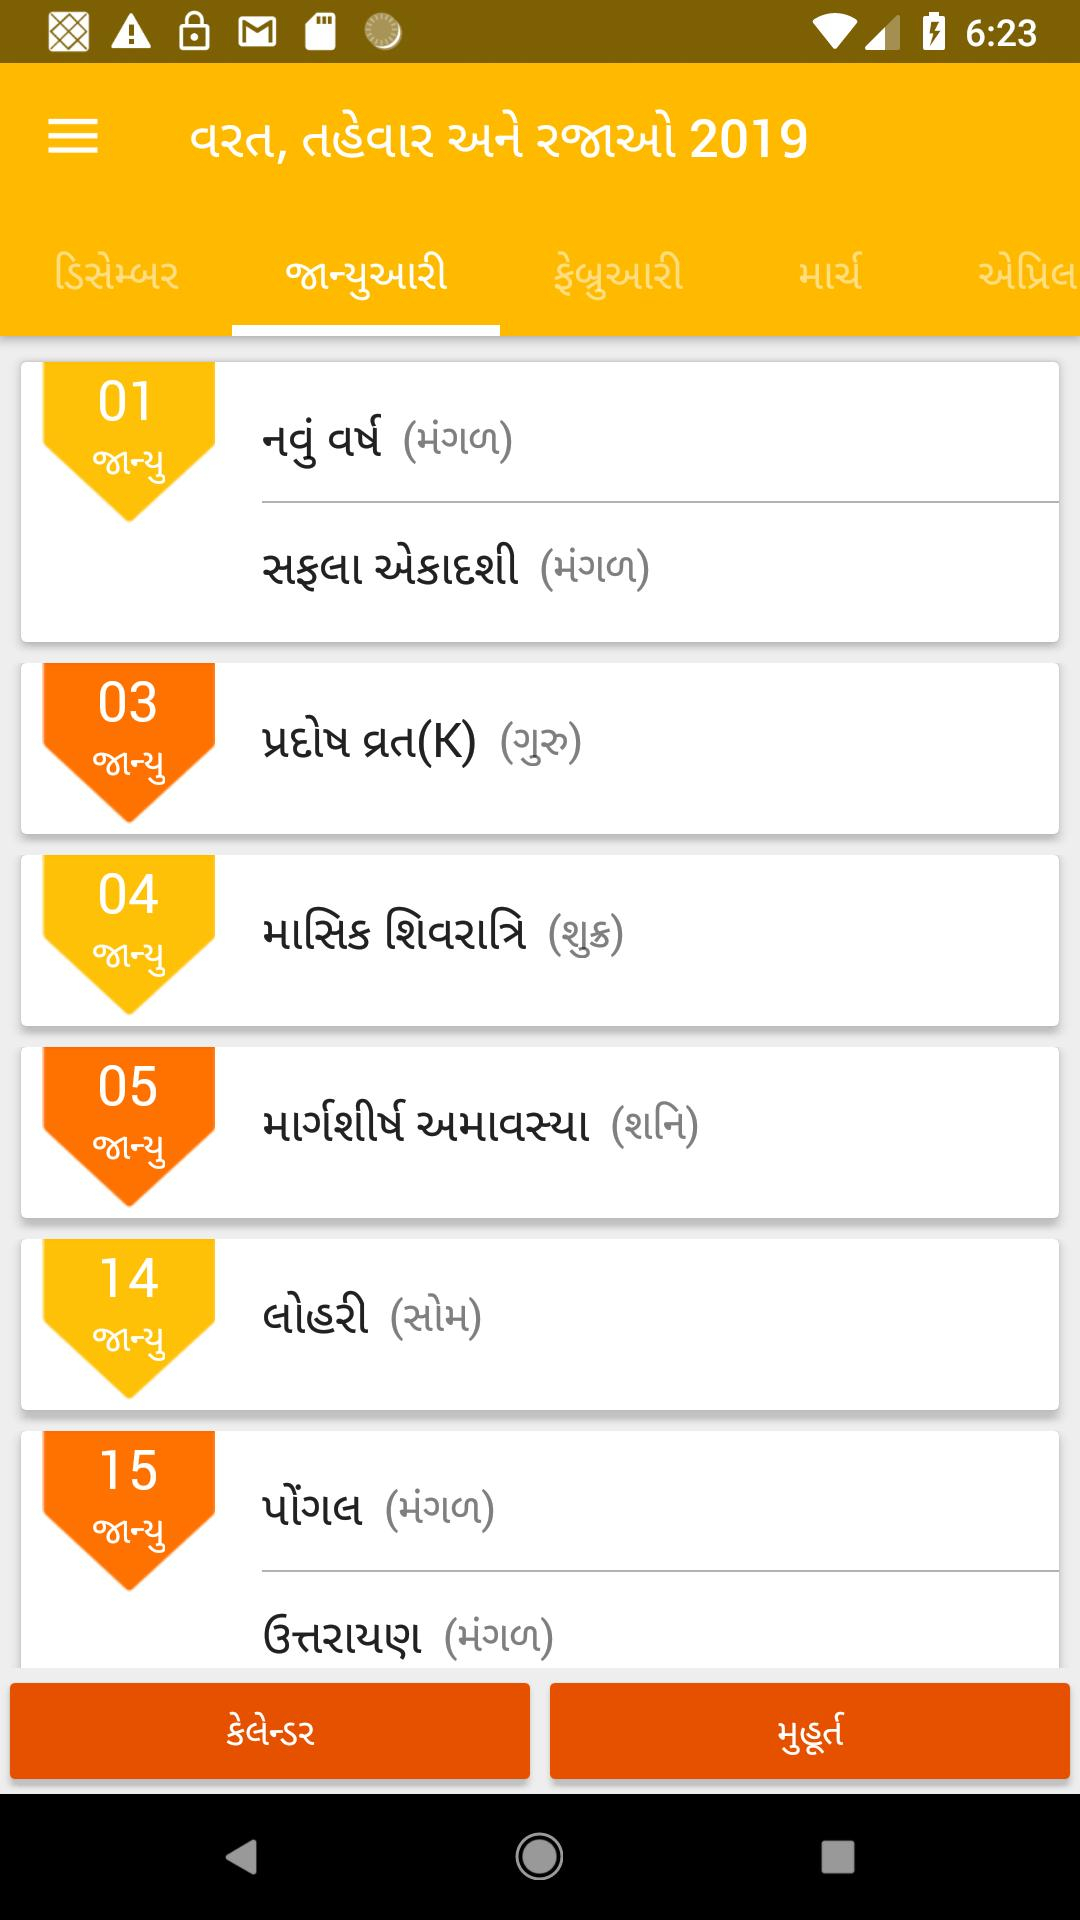 Gujarati Calendar 2020 For Android  Apk Download with regard to Vikram Samvat Date Converter